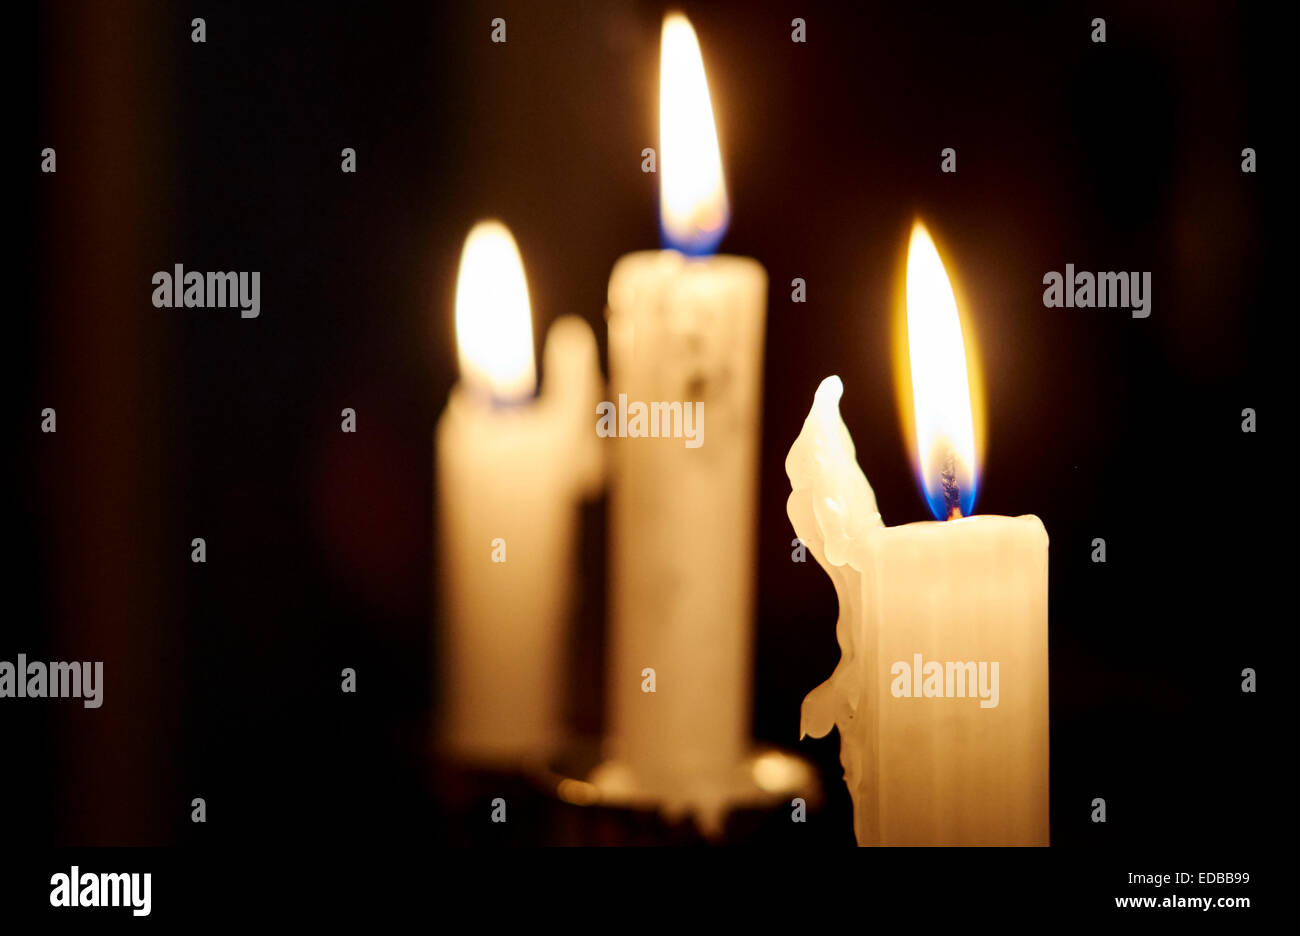 Flame of burning candle by night - Stock Image